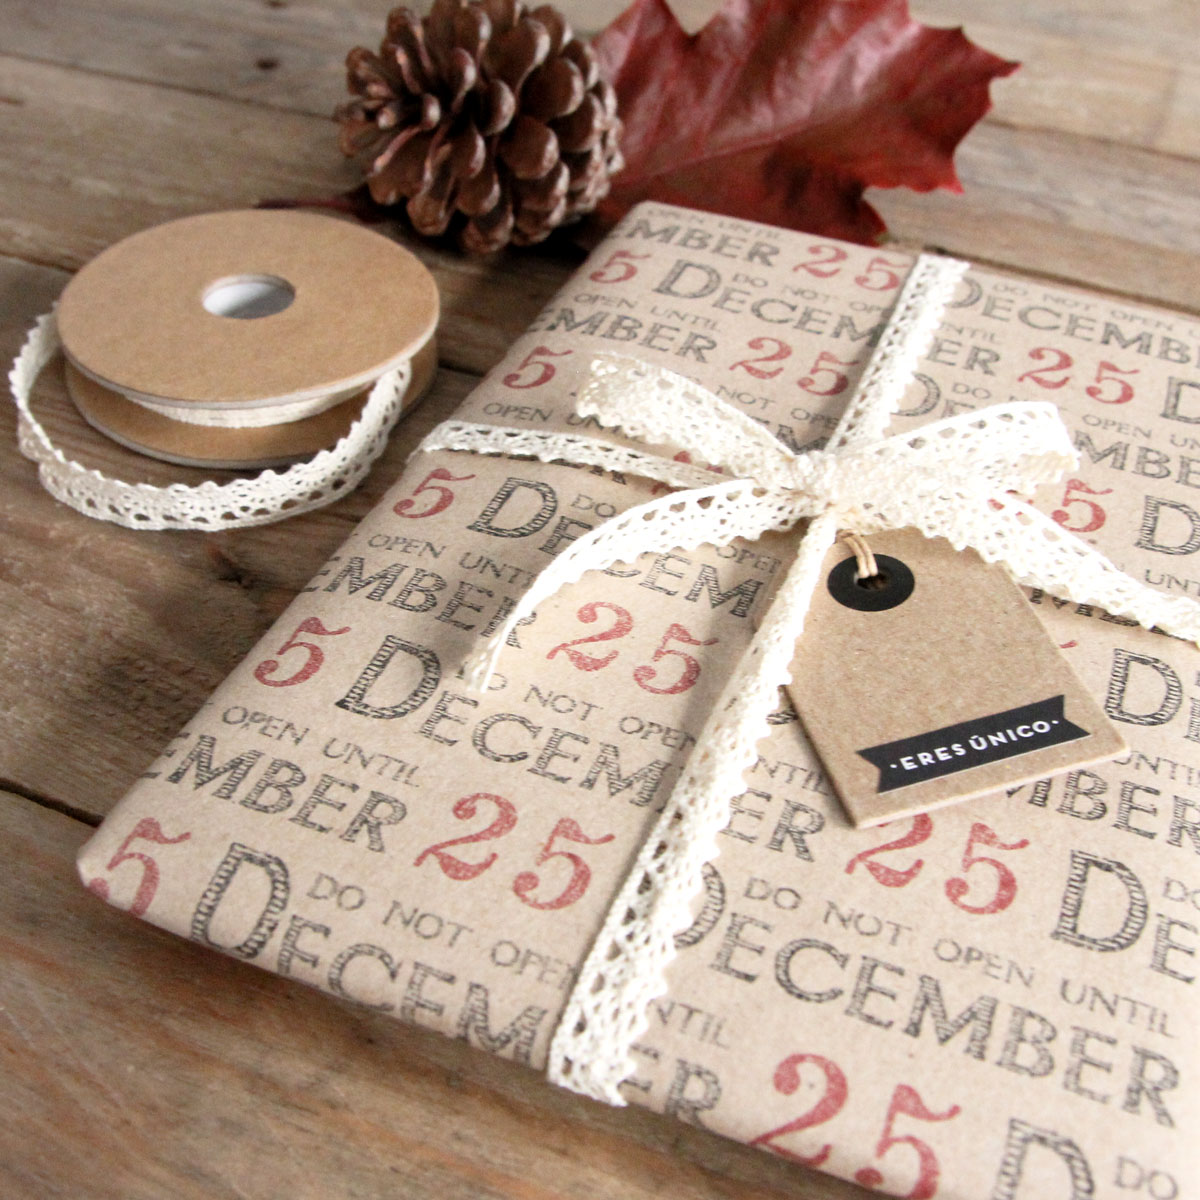 Mr_wonderfulshop_productos_decoracion_navidad_011